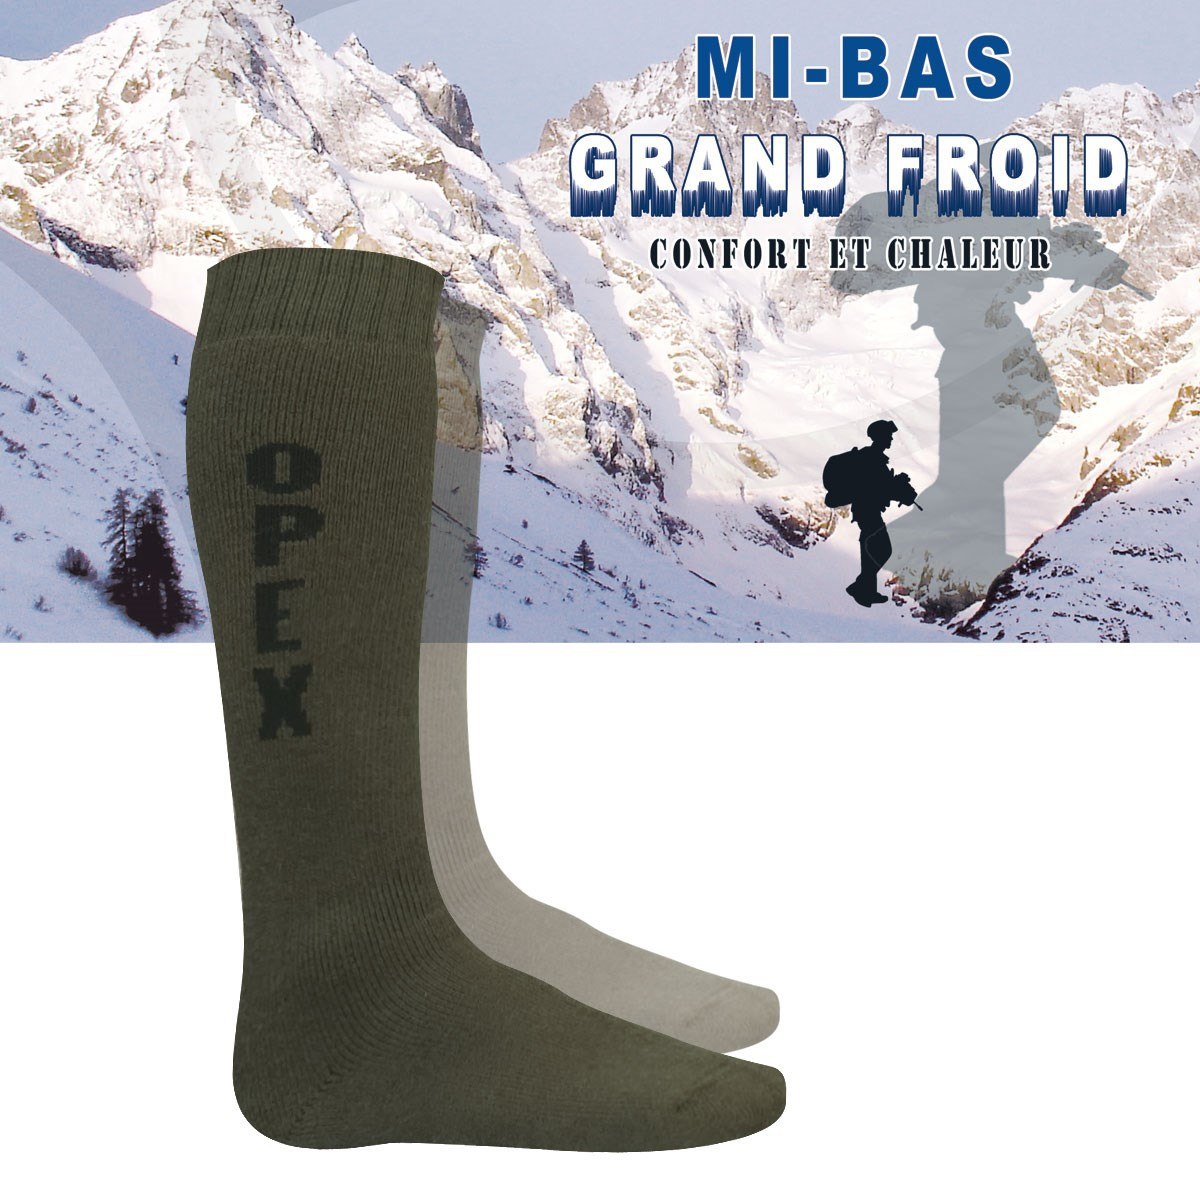 Chaussette militaire grand froid